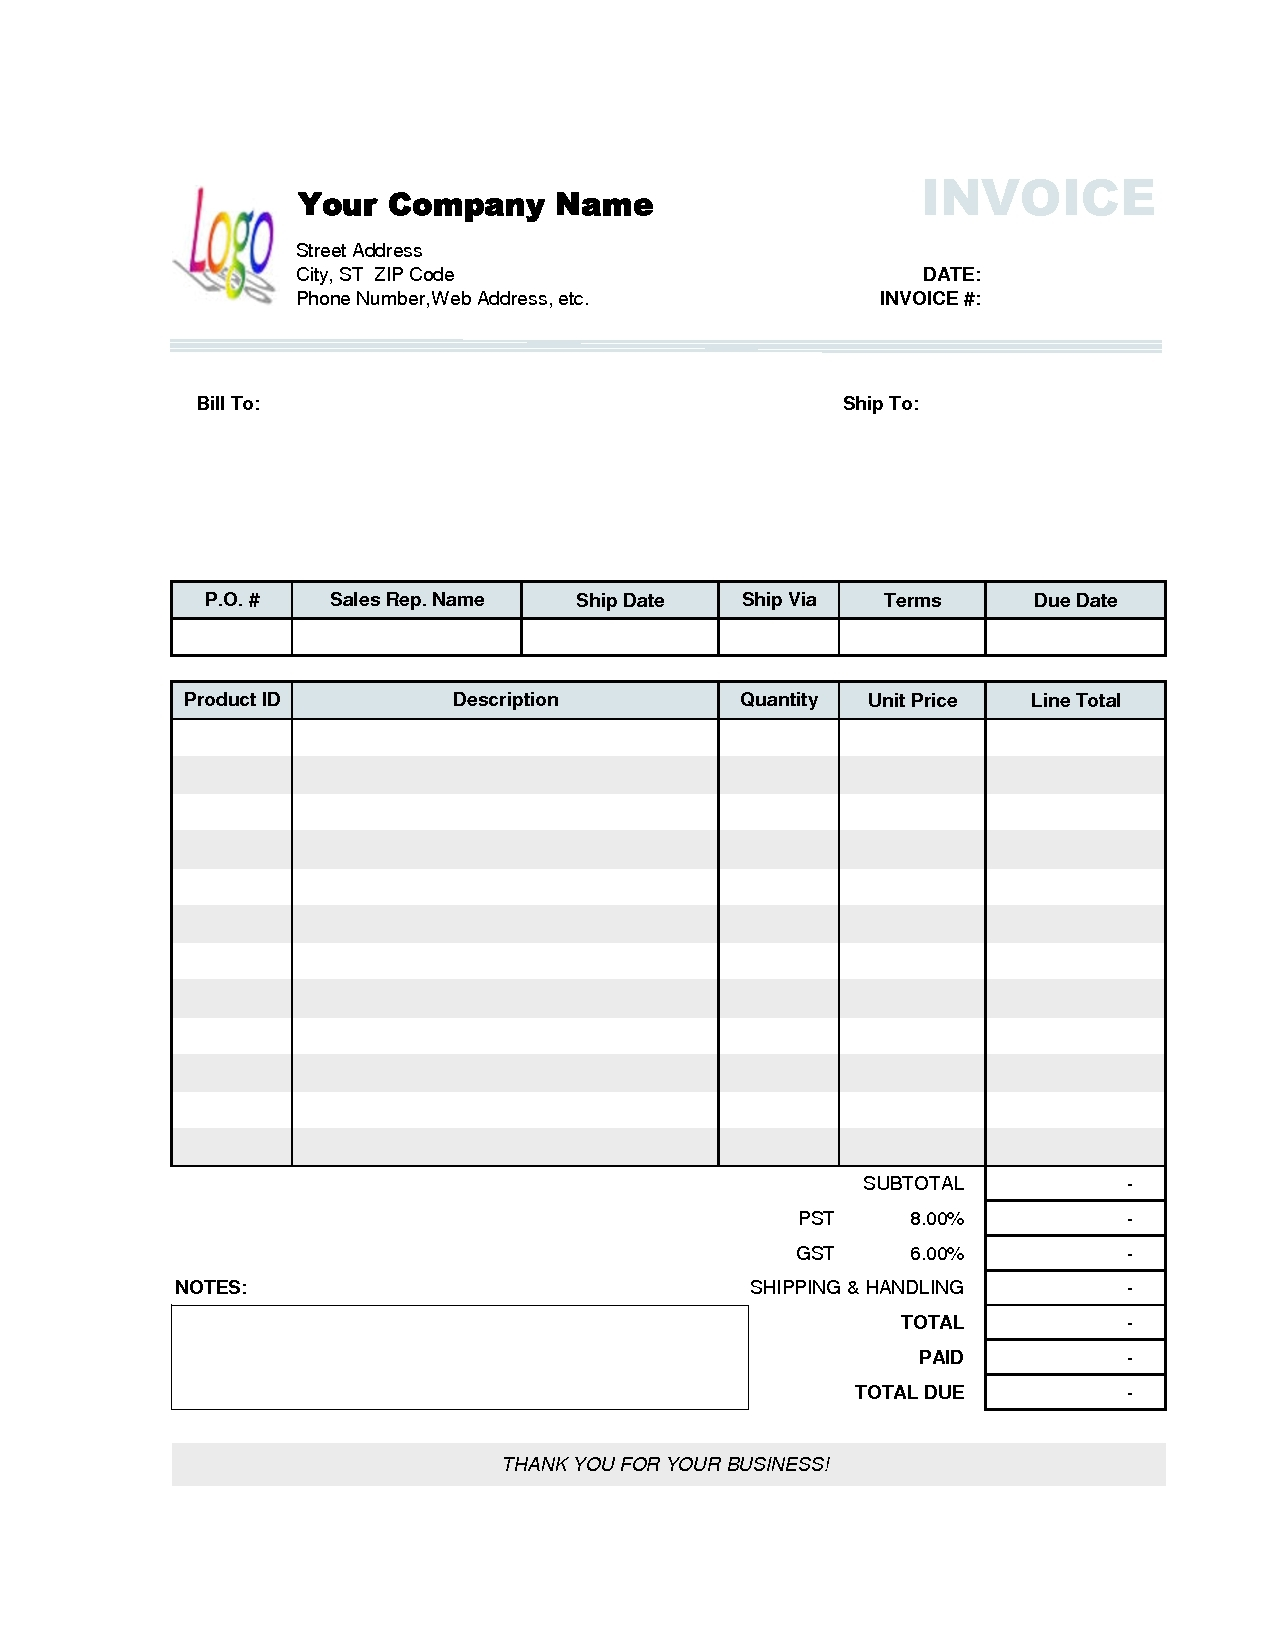 invoice template in excel 2010 invoice template for excel 2010 invoice template free 2016 1275 X 1650